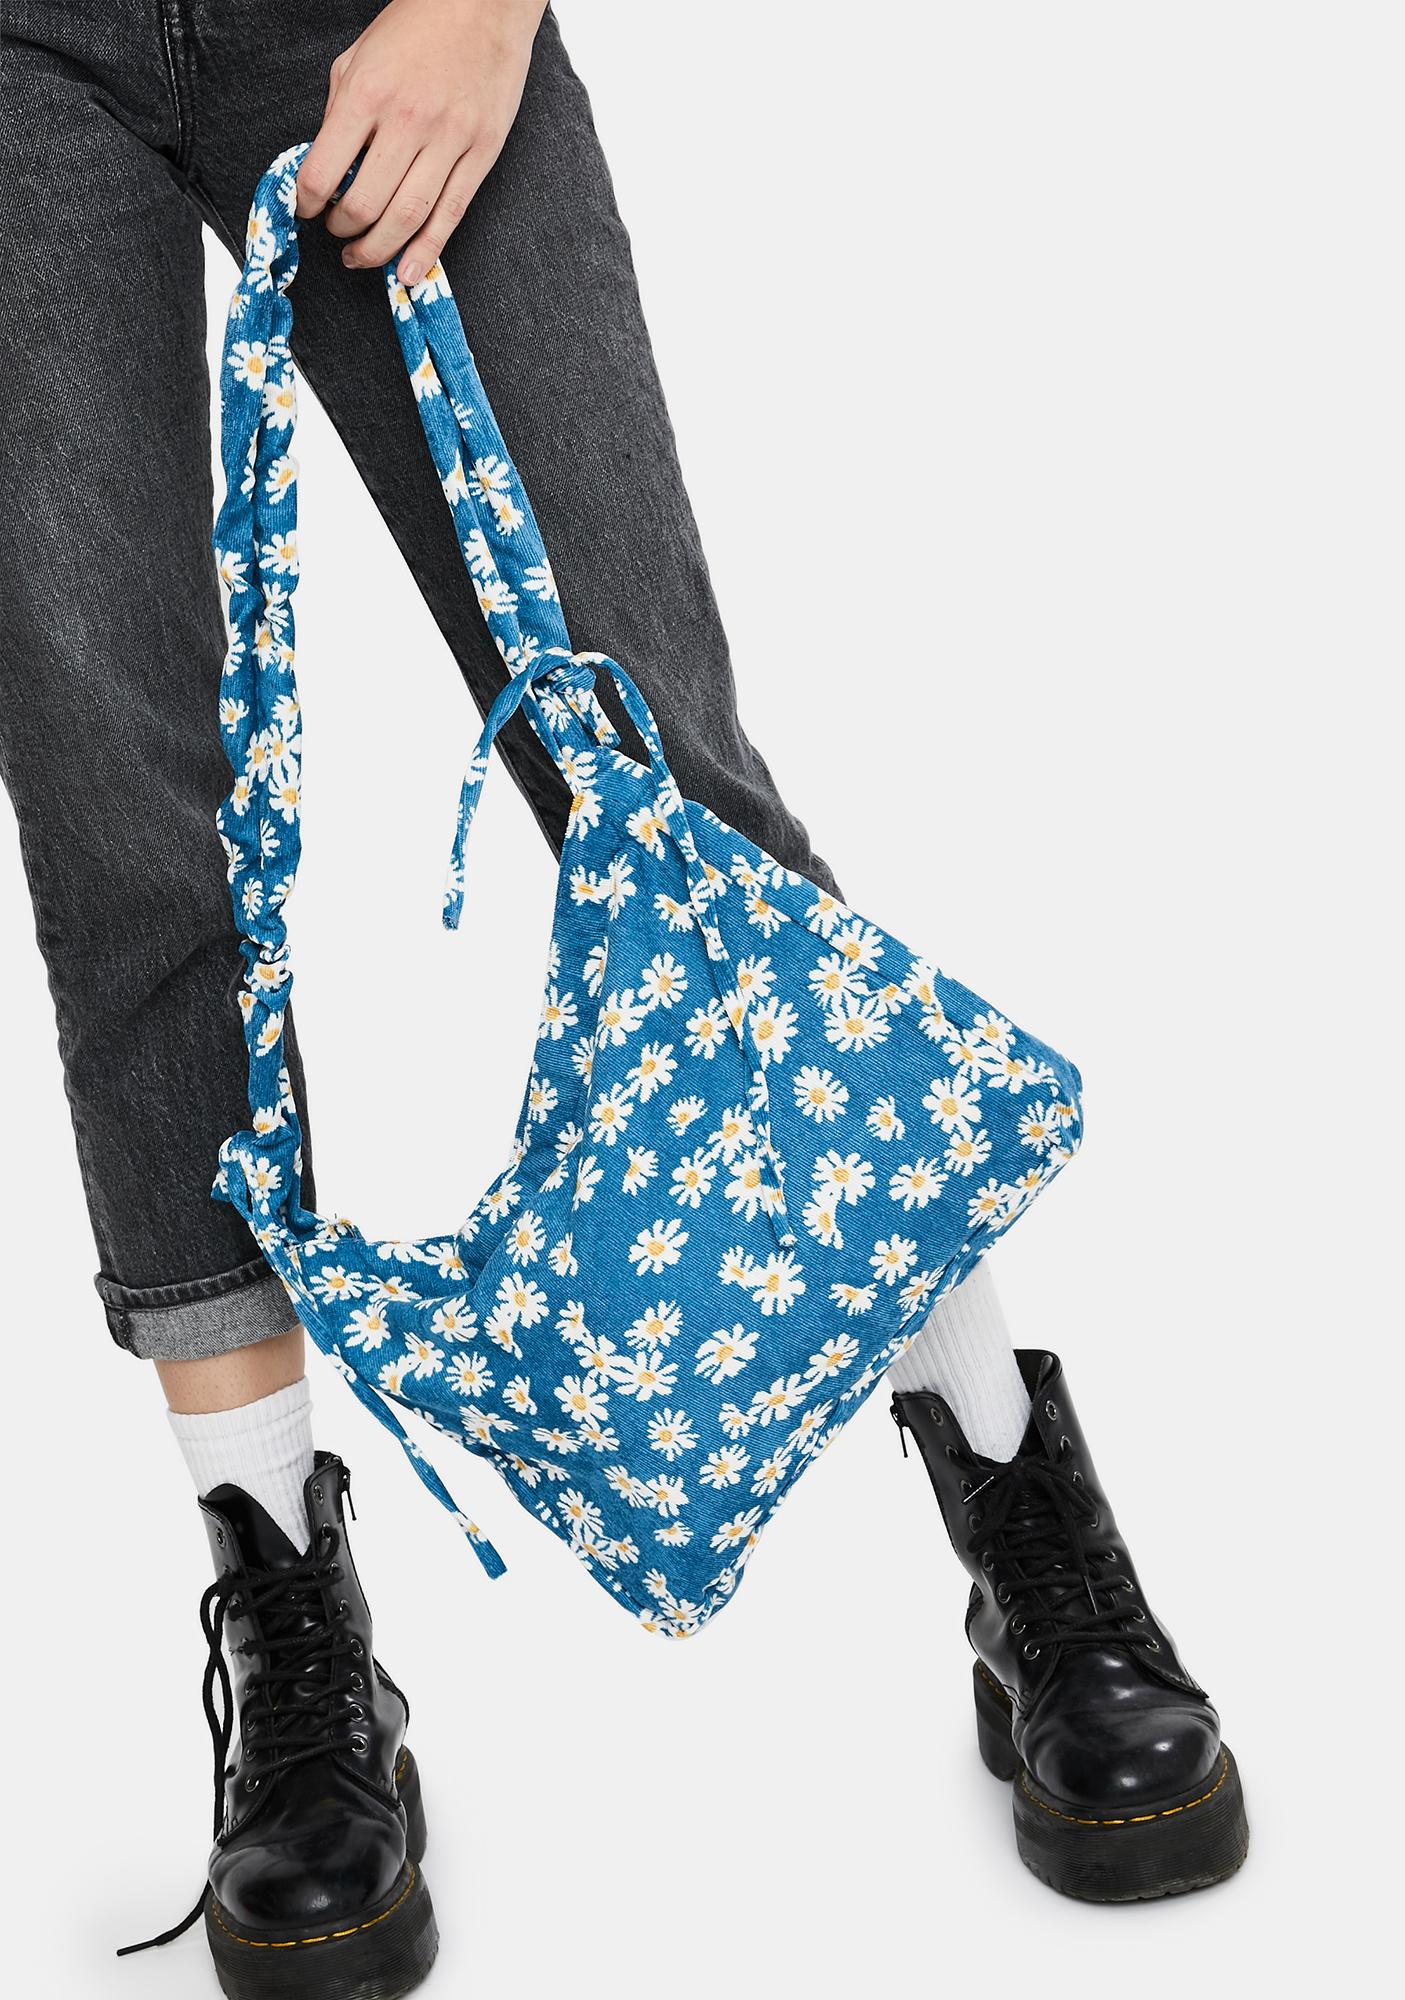 Sky Garden Goddess Tote Bag